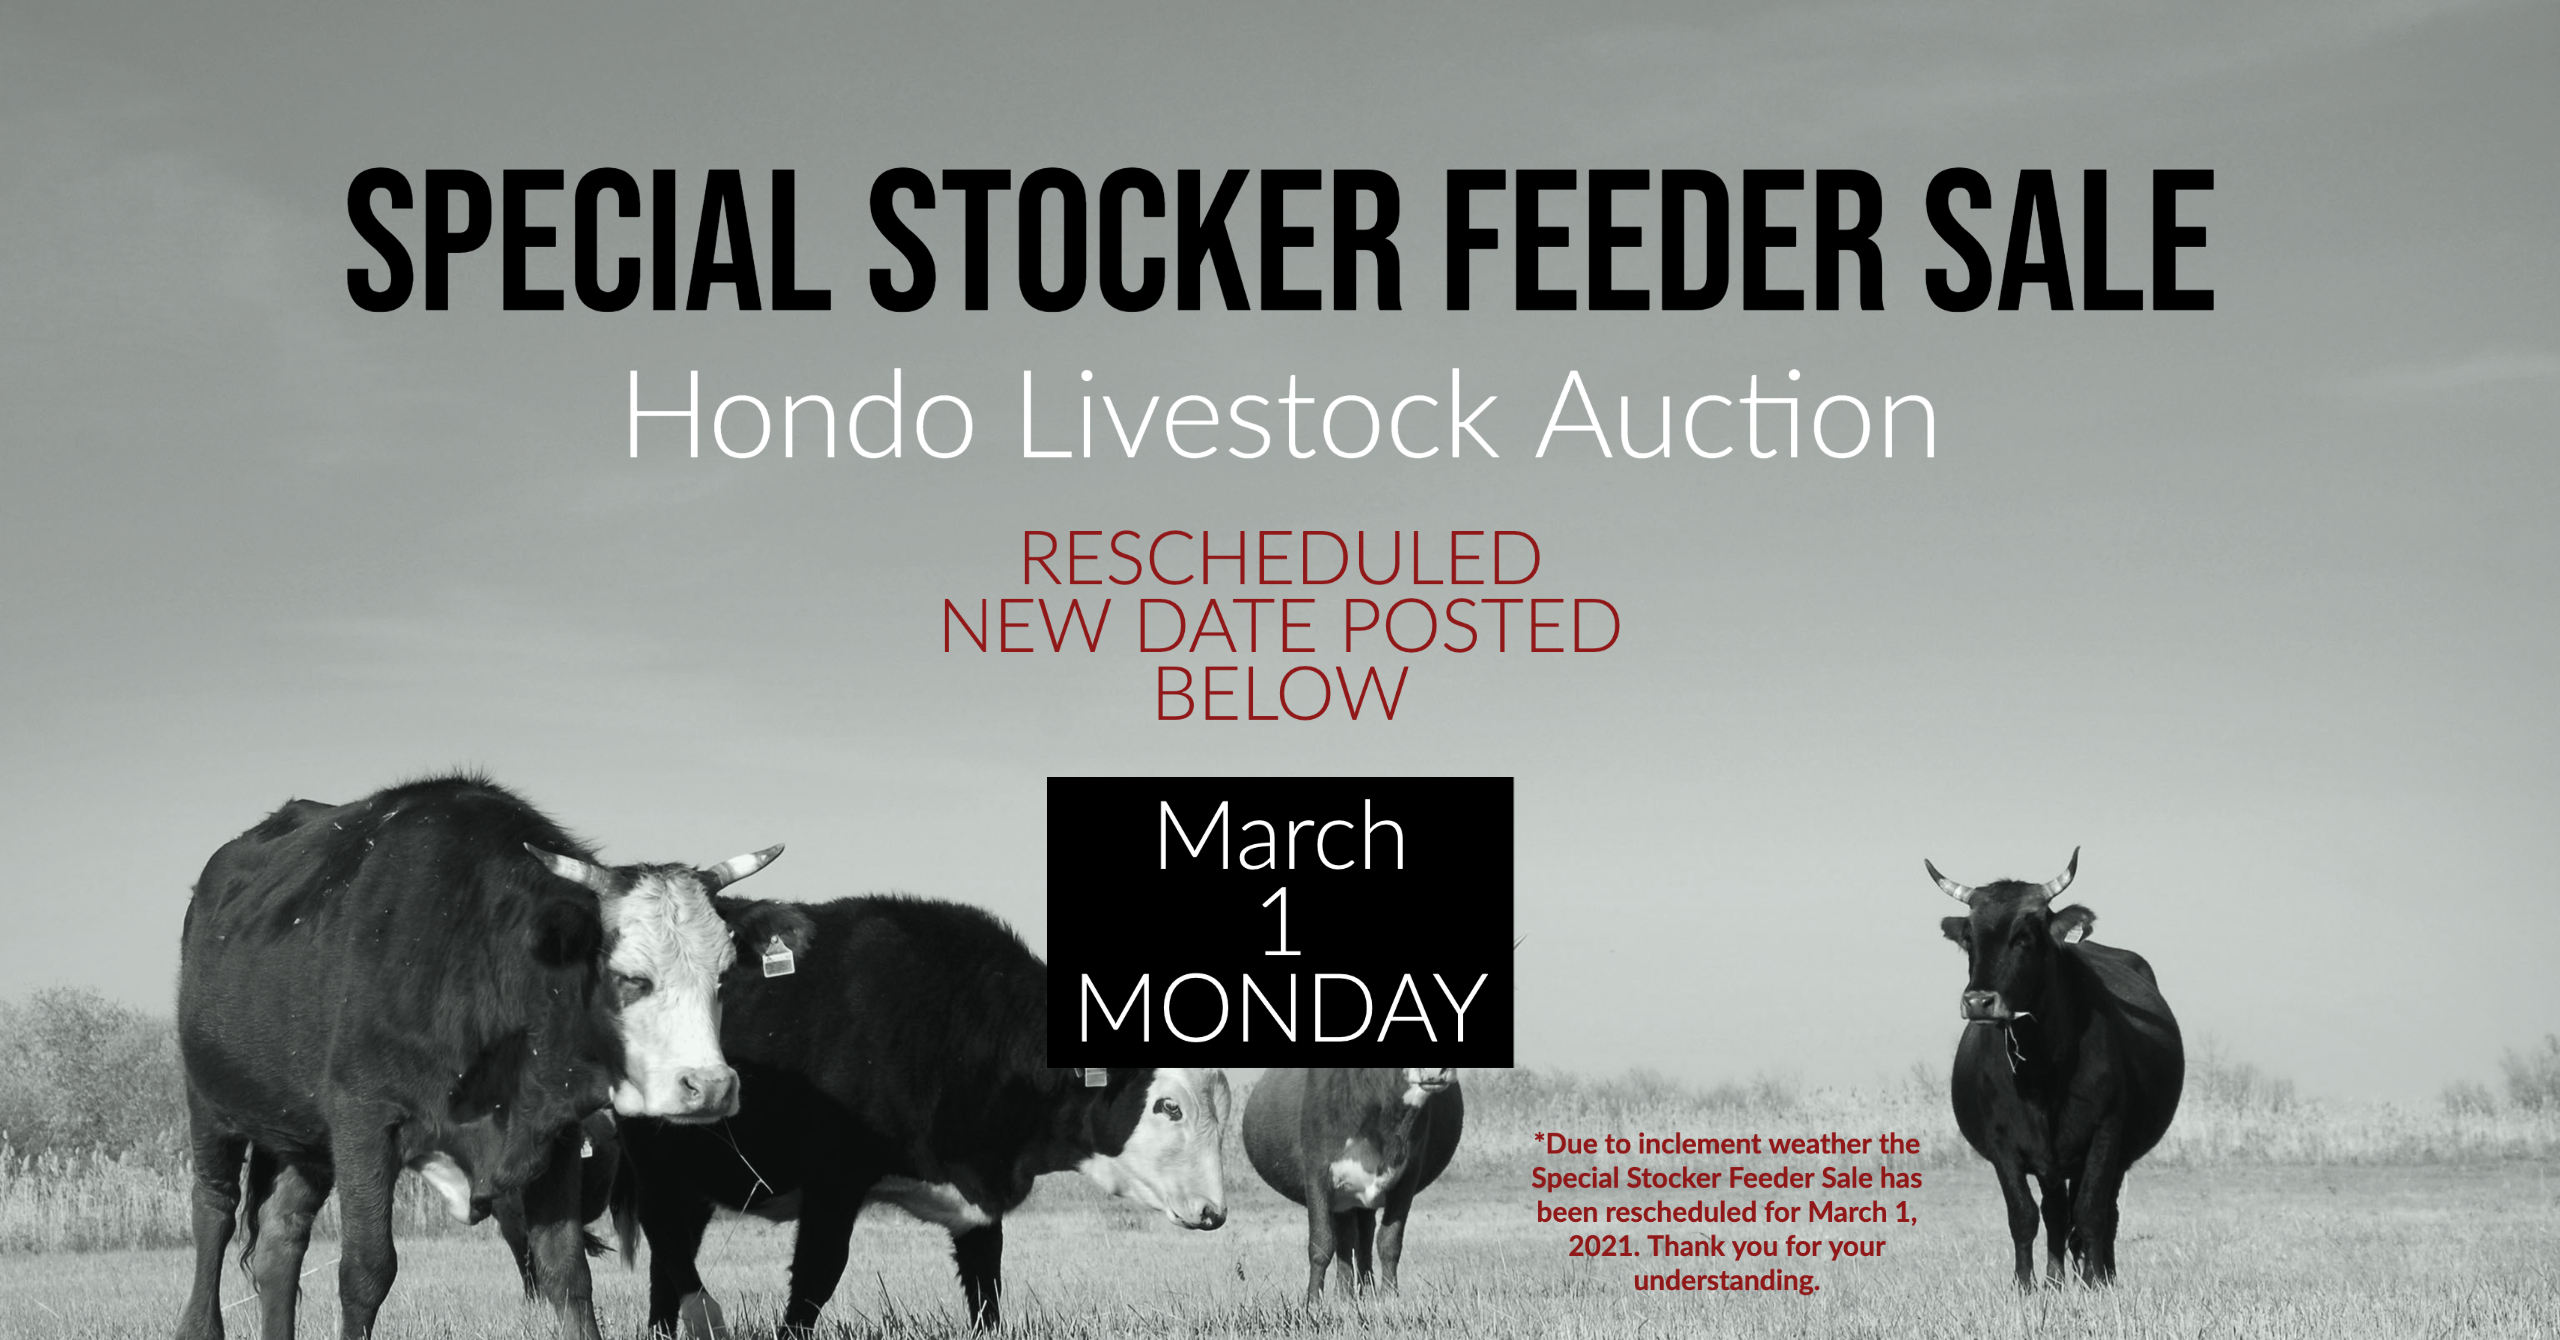 Special Livestock Sale, Cattle Auction, Hondo Livestock